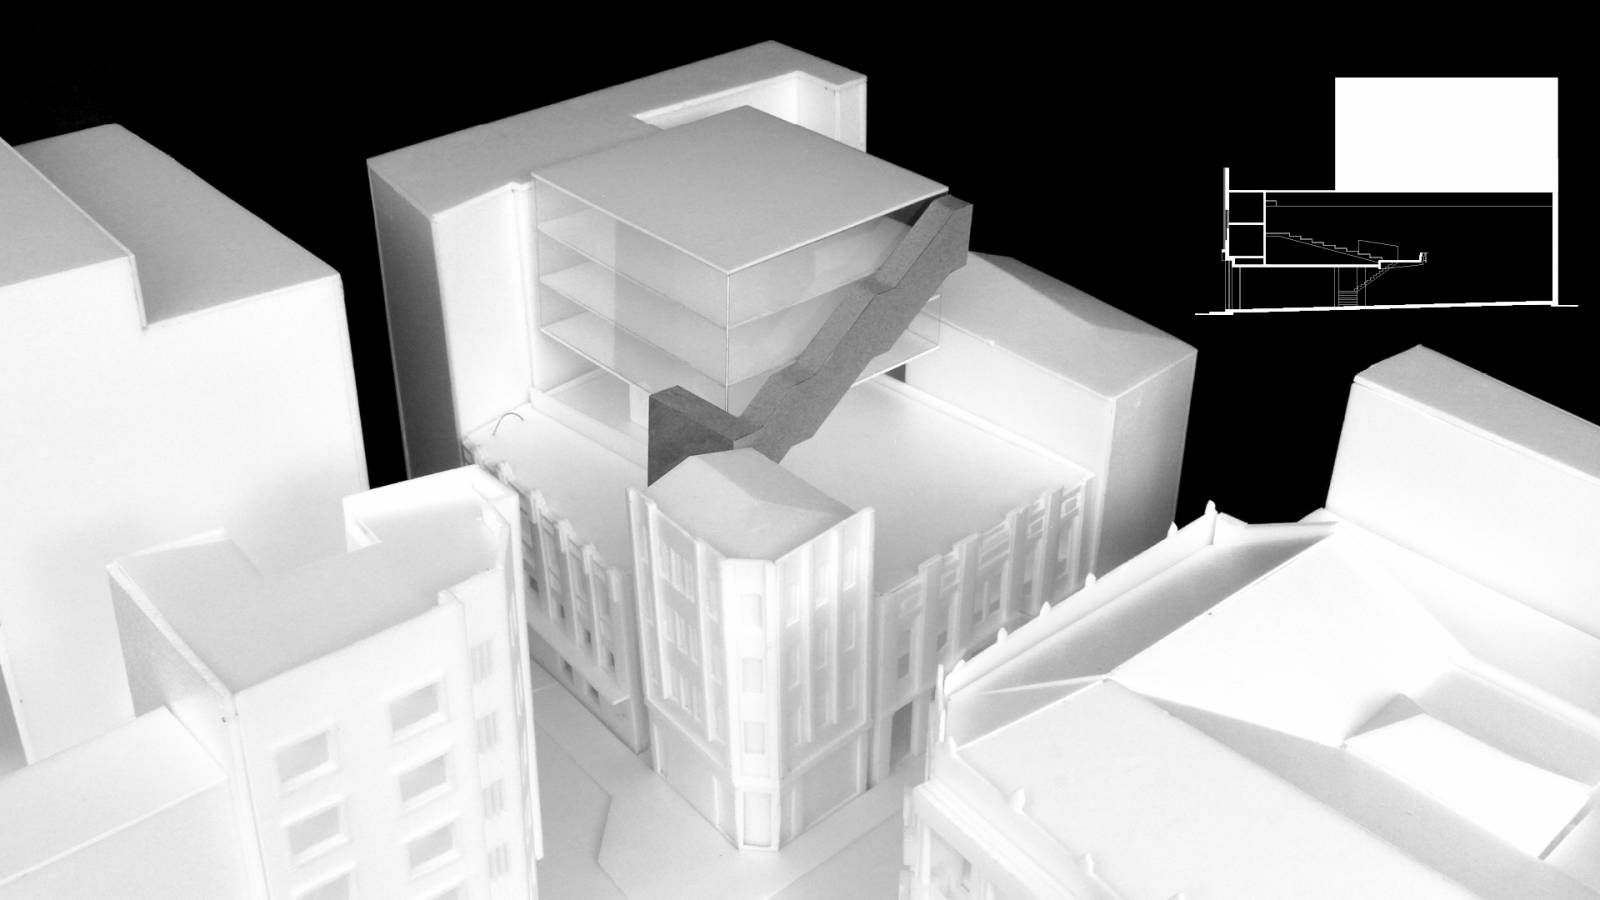 CONCEPT MODEL - Cinearte - SPOL Architects